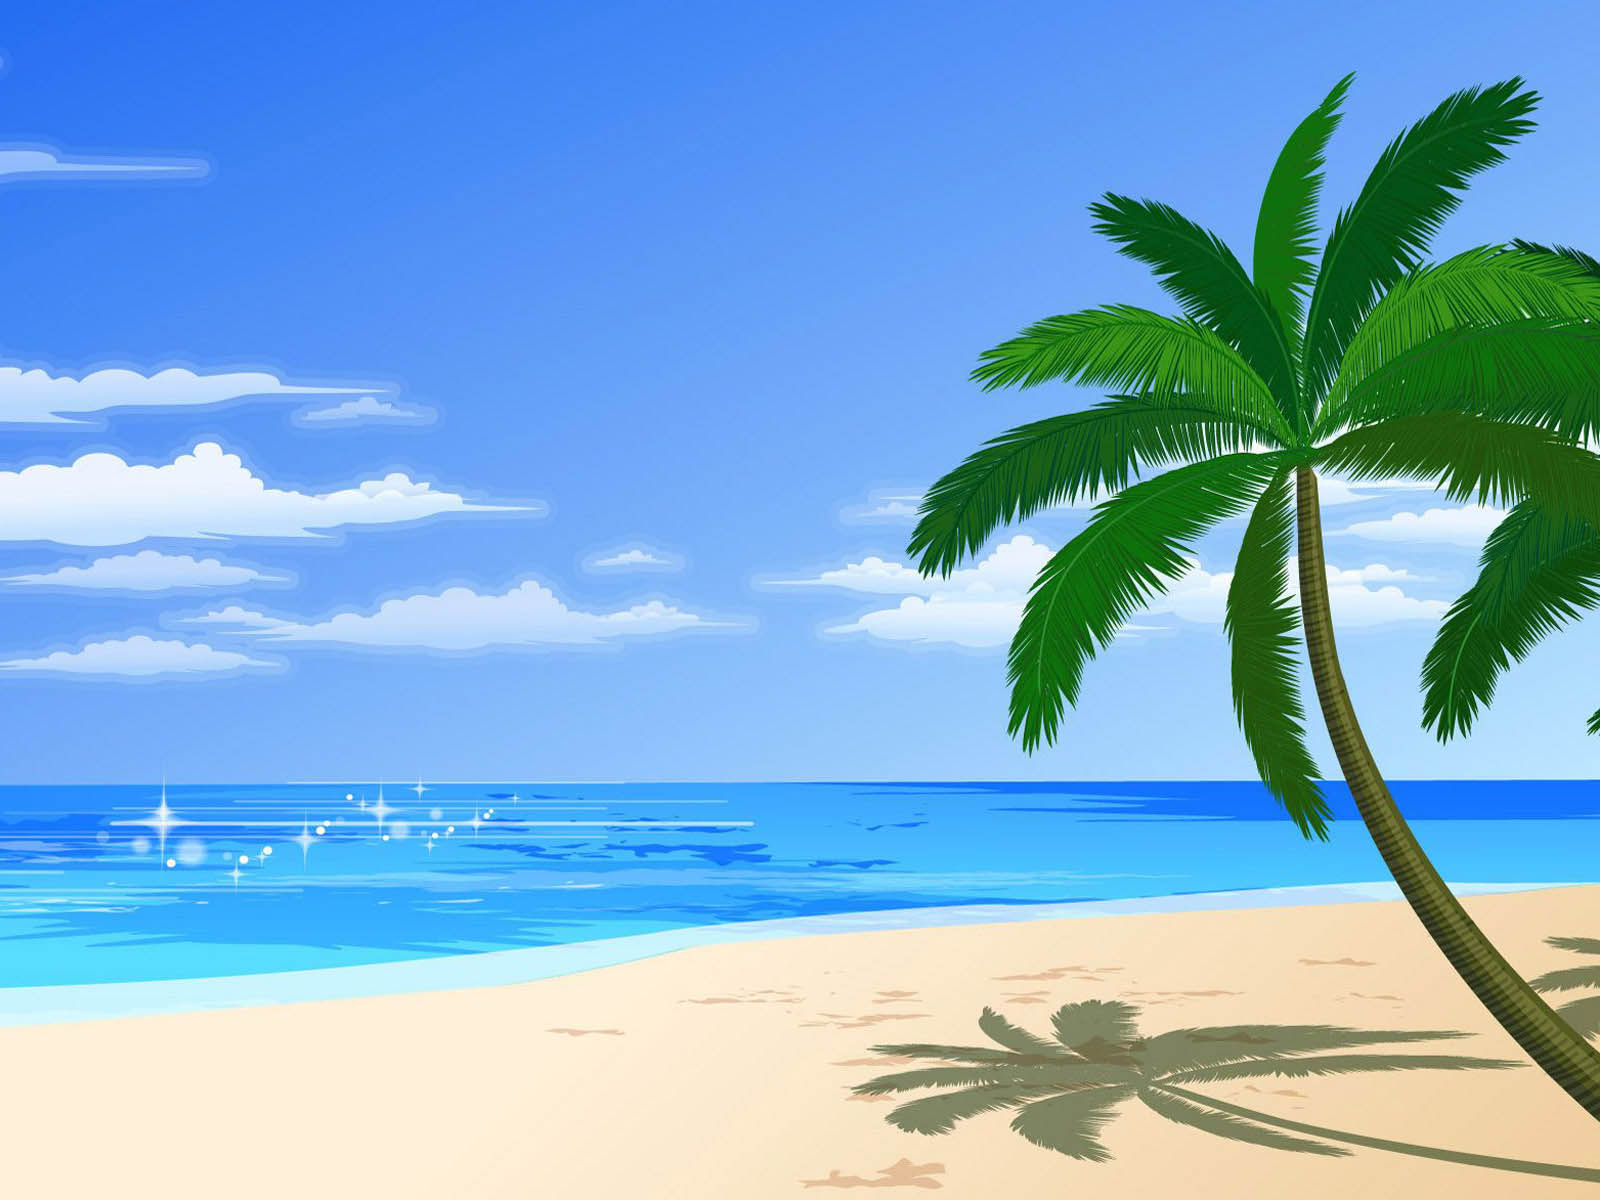 Free Tropical Beach Cliparts, Download Free Clip Art, Free.